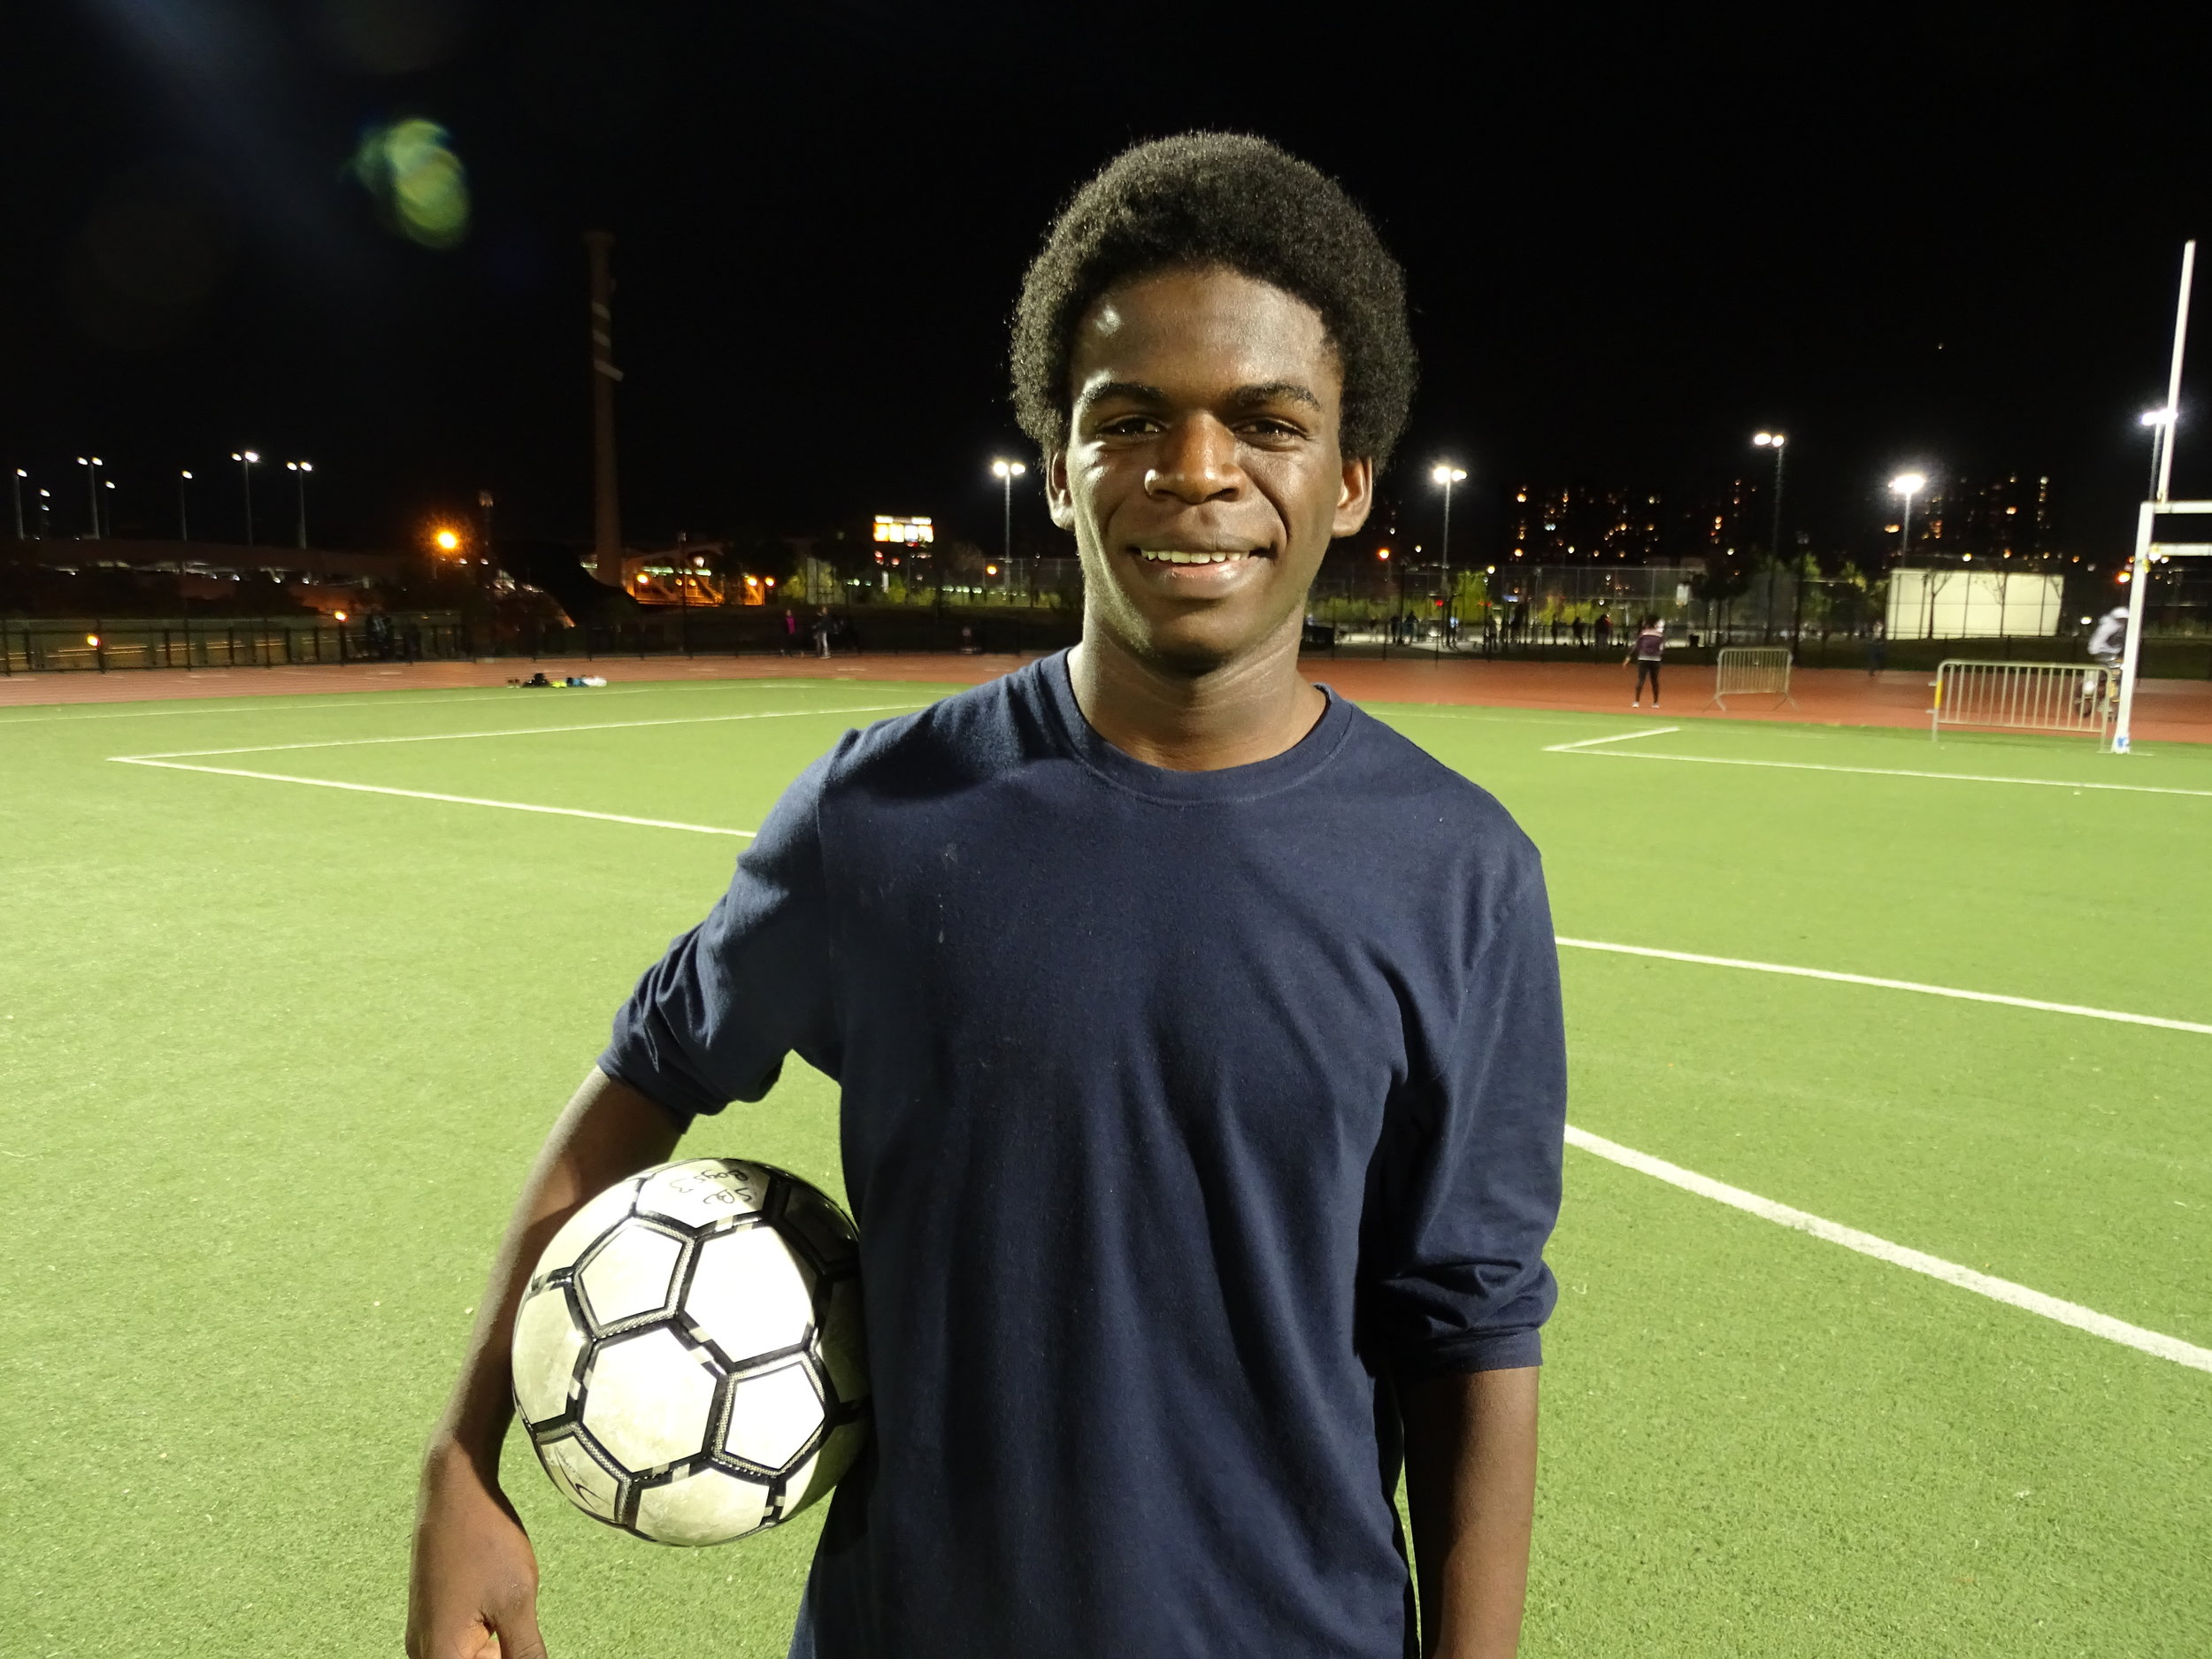 A few years after his life-changing experience crossing into the U.S. on top of a cargo train, Axel, 15, a native of Honduras and a new member of the U16 team, hopes South Bronx United can help him fulfill his fútbol aspirations. Kervy Robles for After the Final Whistle.